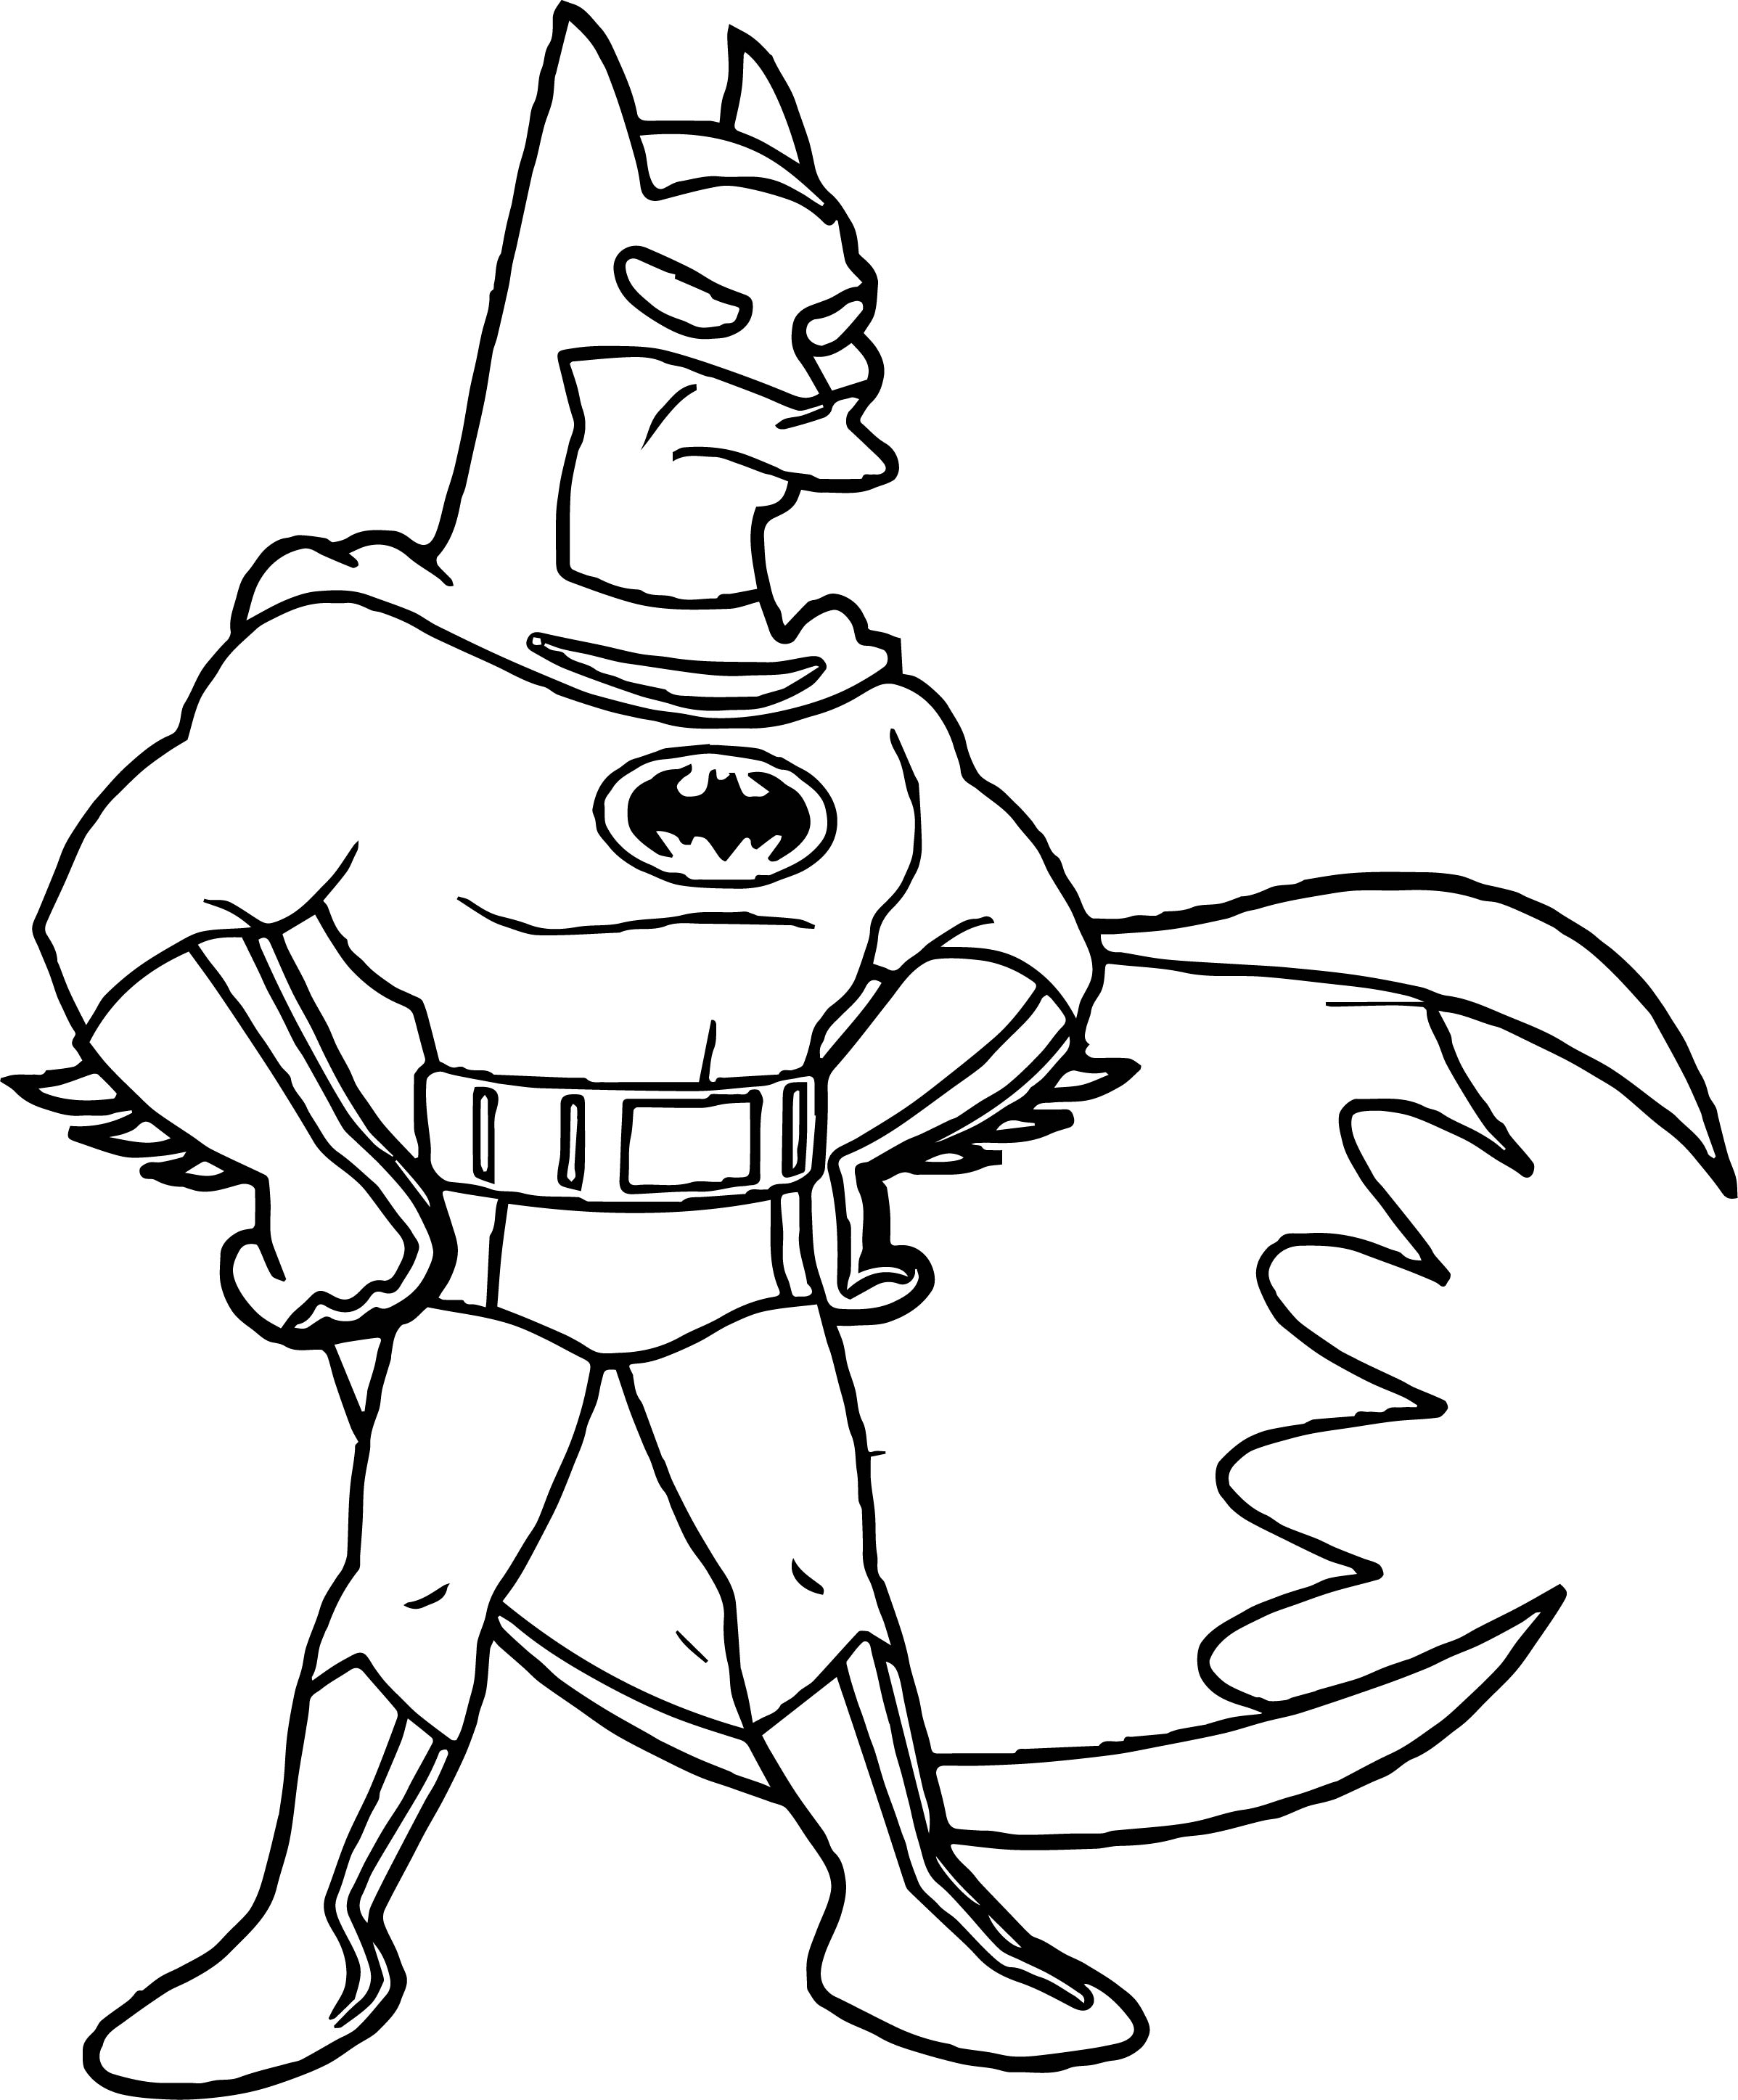 DC Comics Batman The Animated Series Coloring Page ...